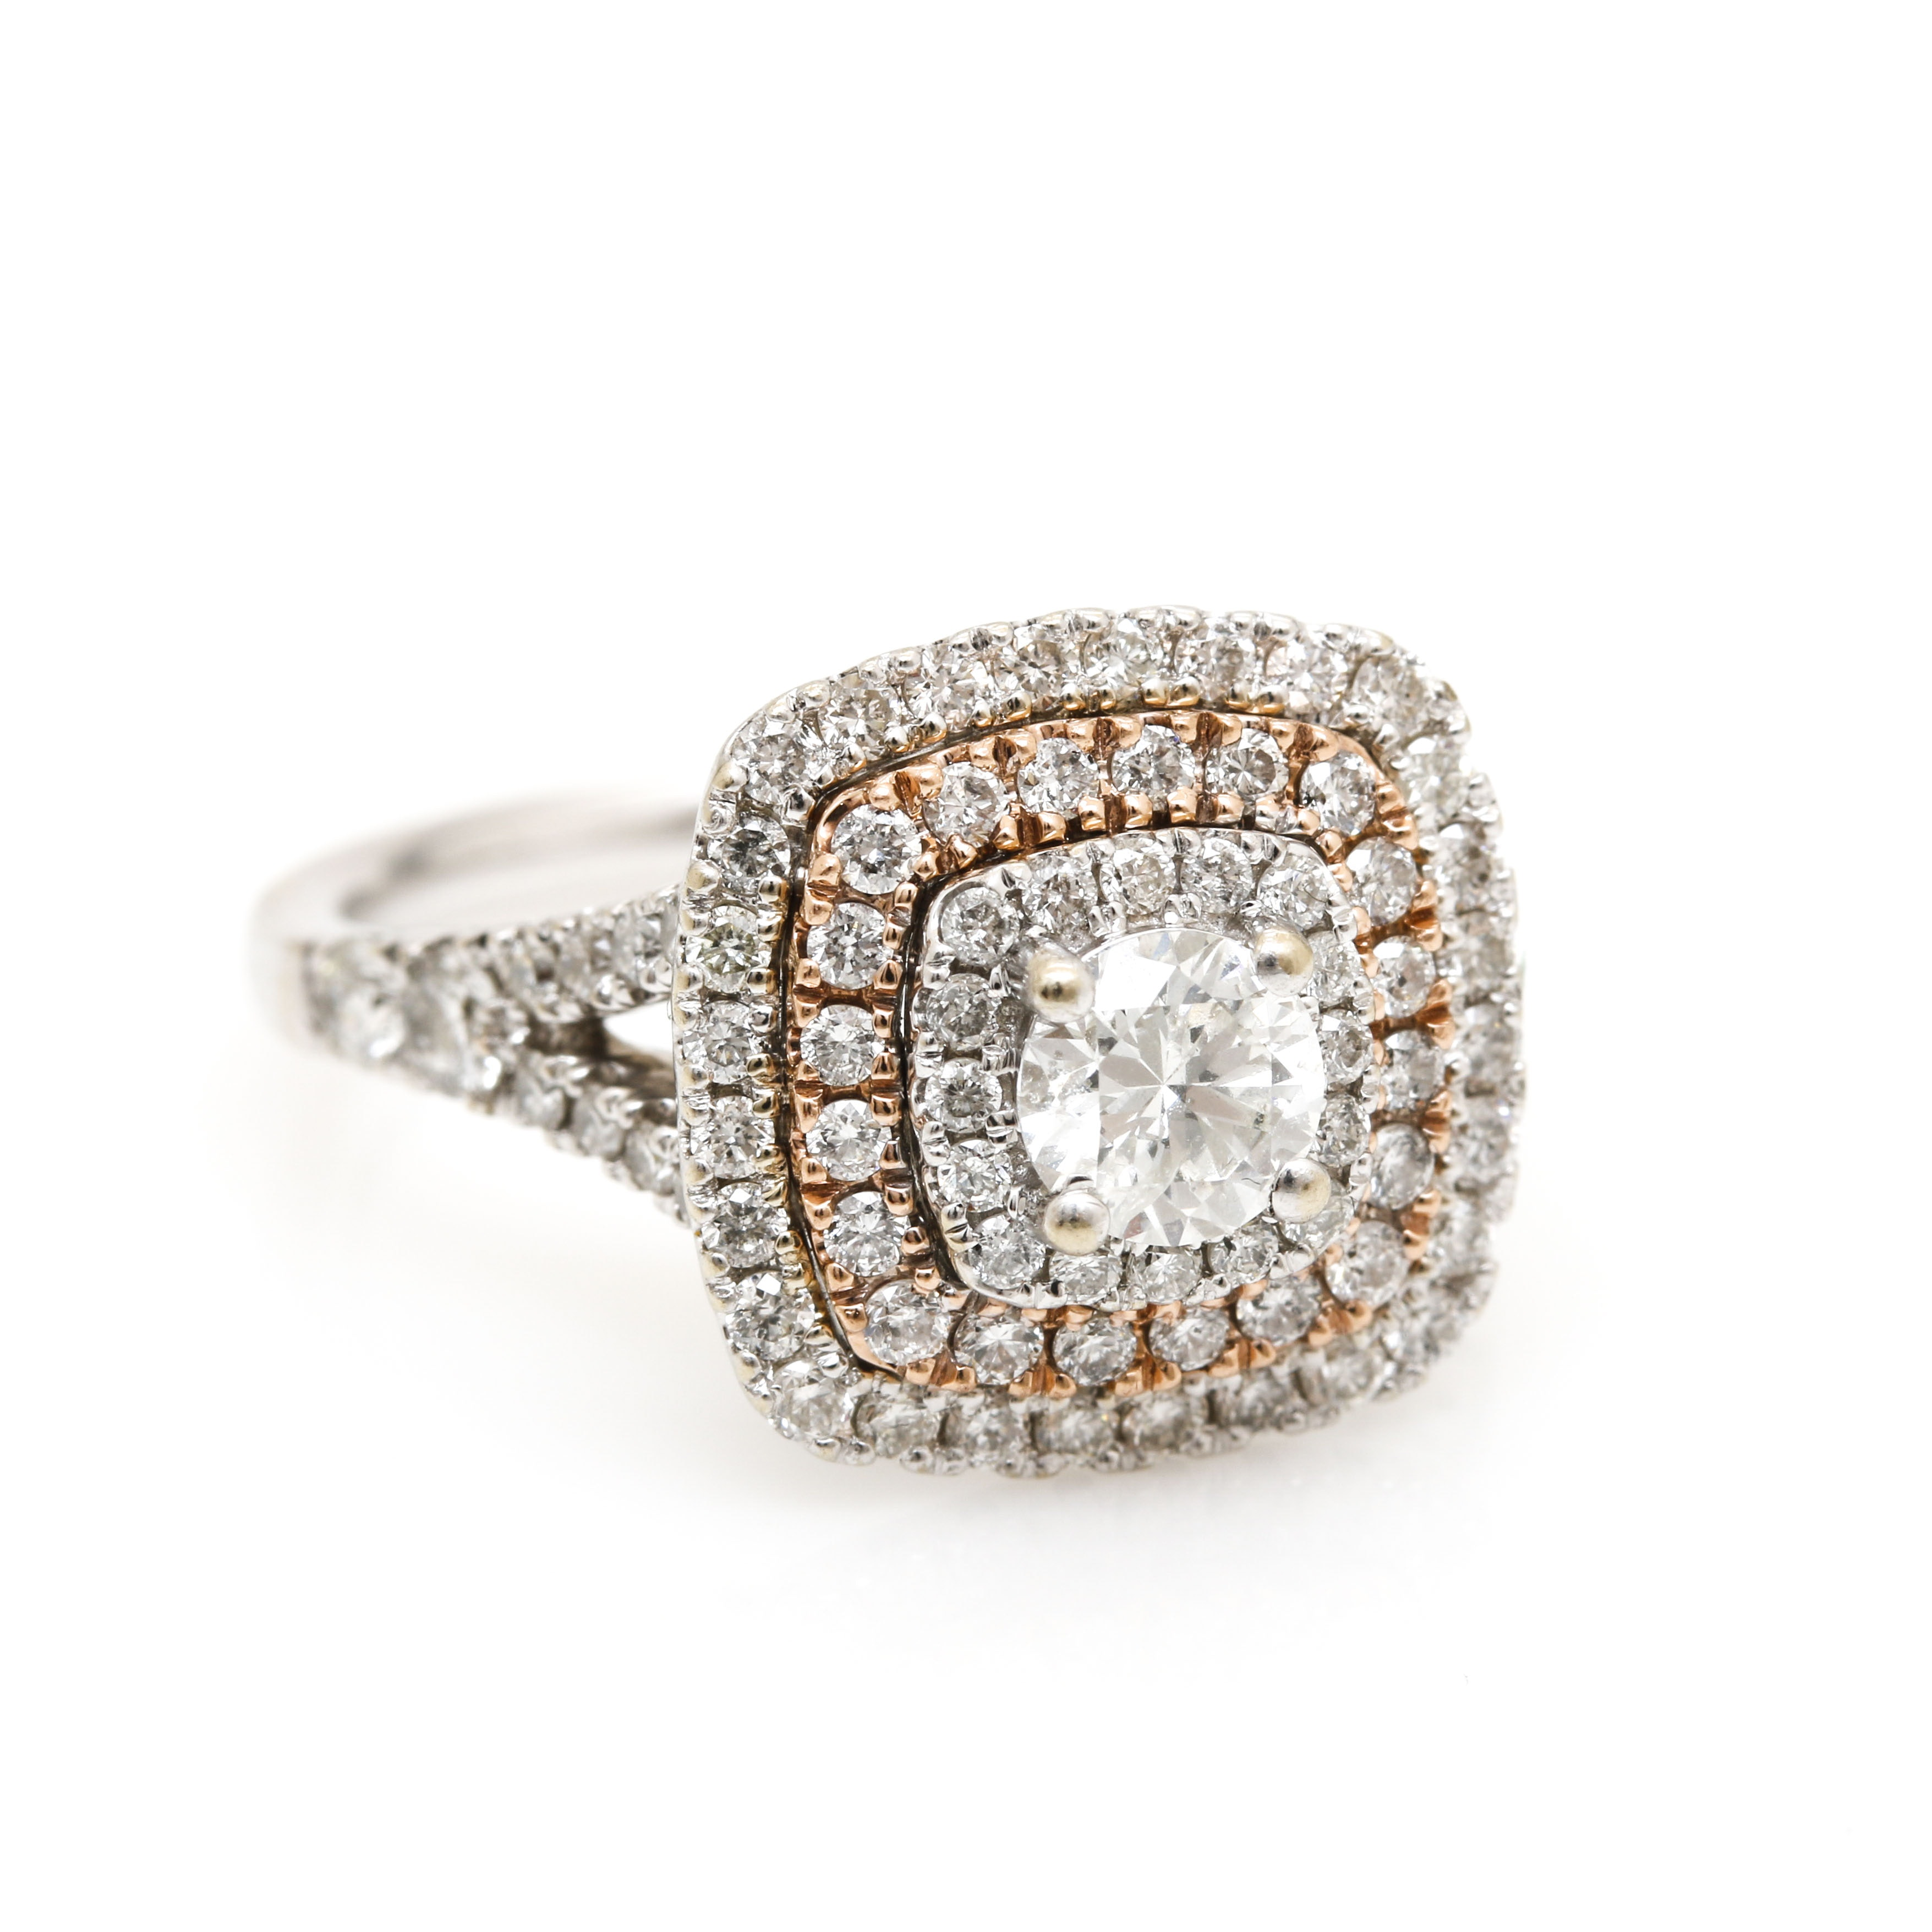 14K White Gold 1.48 CTW Diamond Ring with Rose Gold Accents